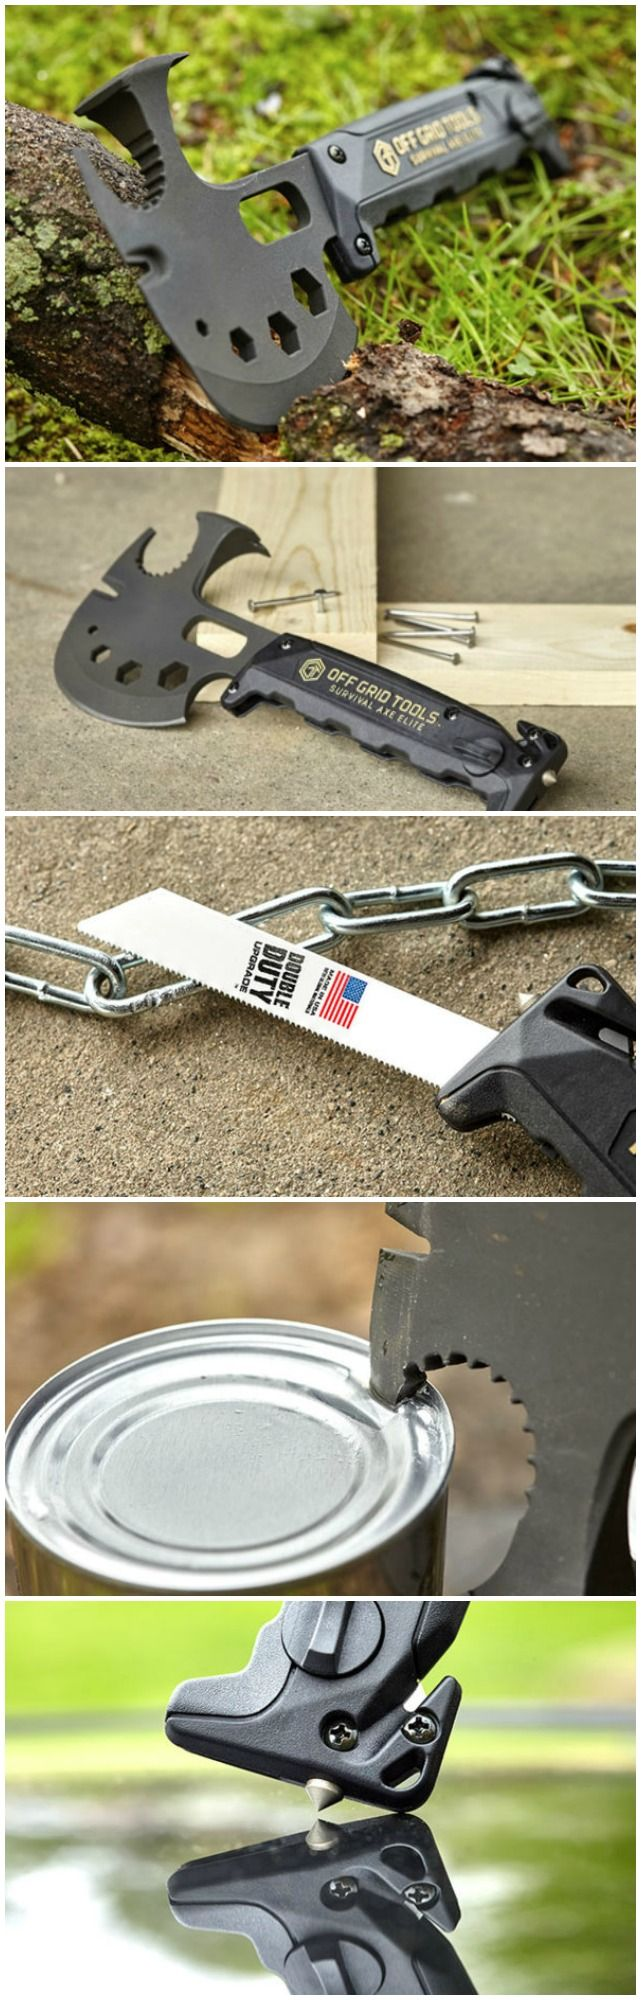 The Off-Grid Survival Axe. If the Zombie Apocalypse happens tomorrow, this is your weapon of choice.